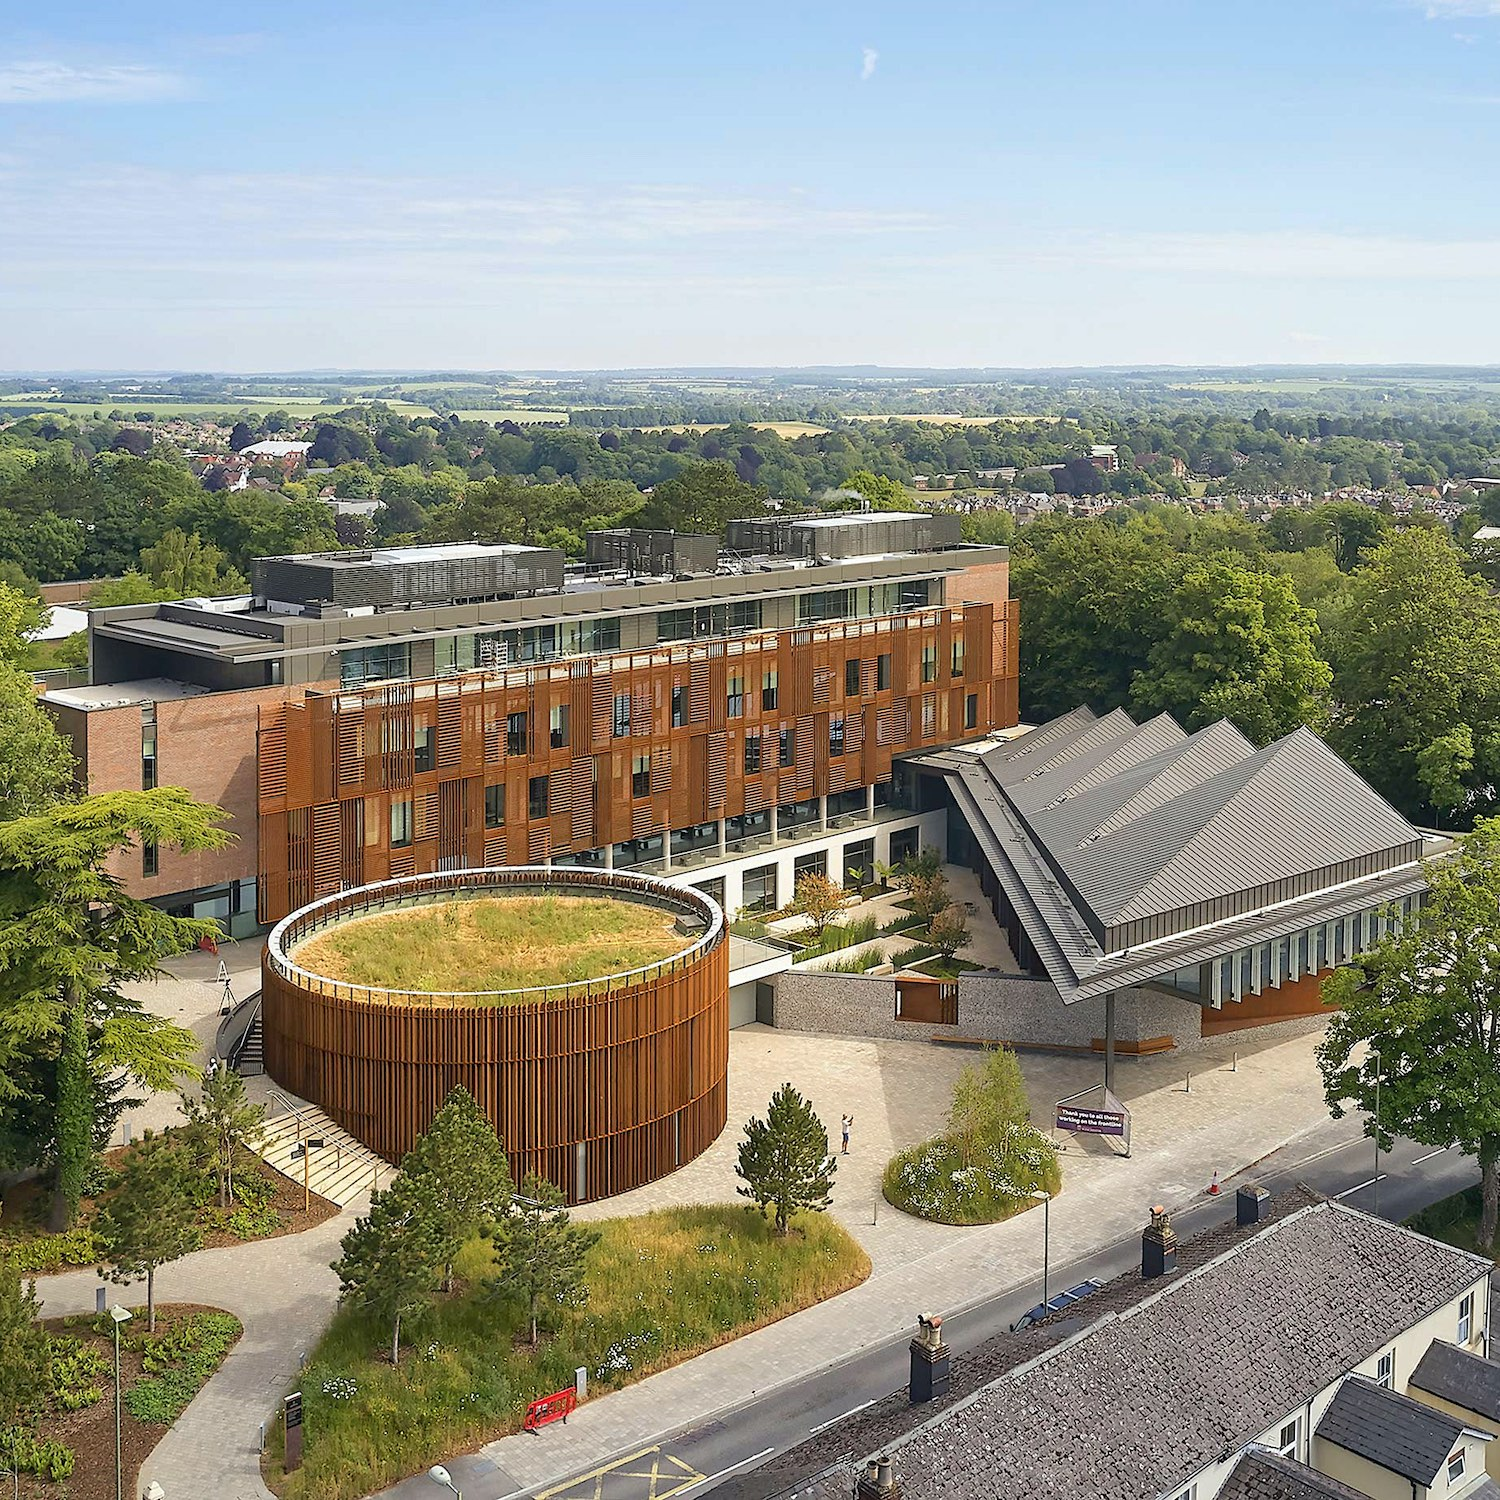 West Downs Campus, University of Winchester